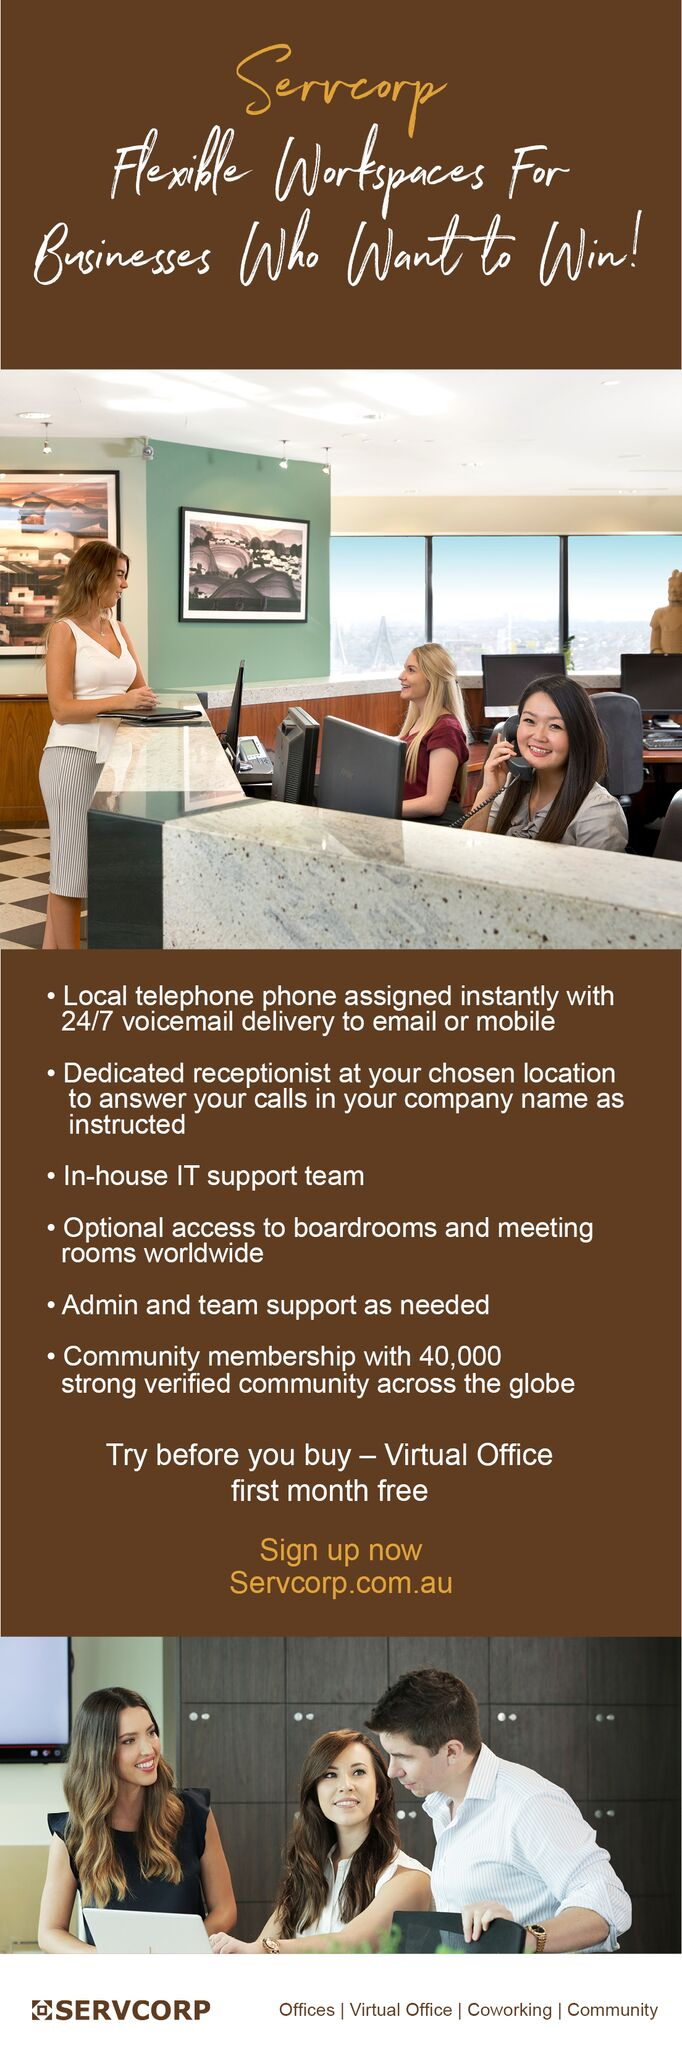 Servcorp Serviced Virtual Offices Telephone Answering Services